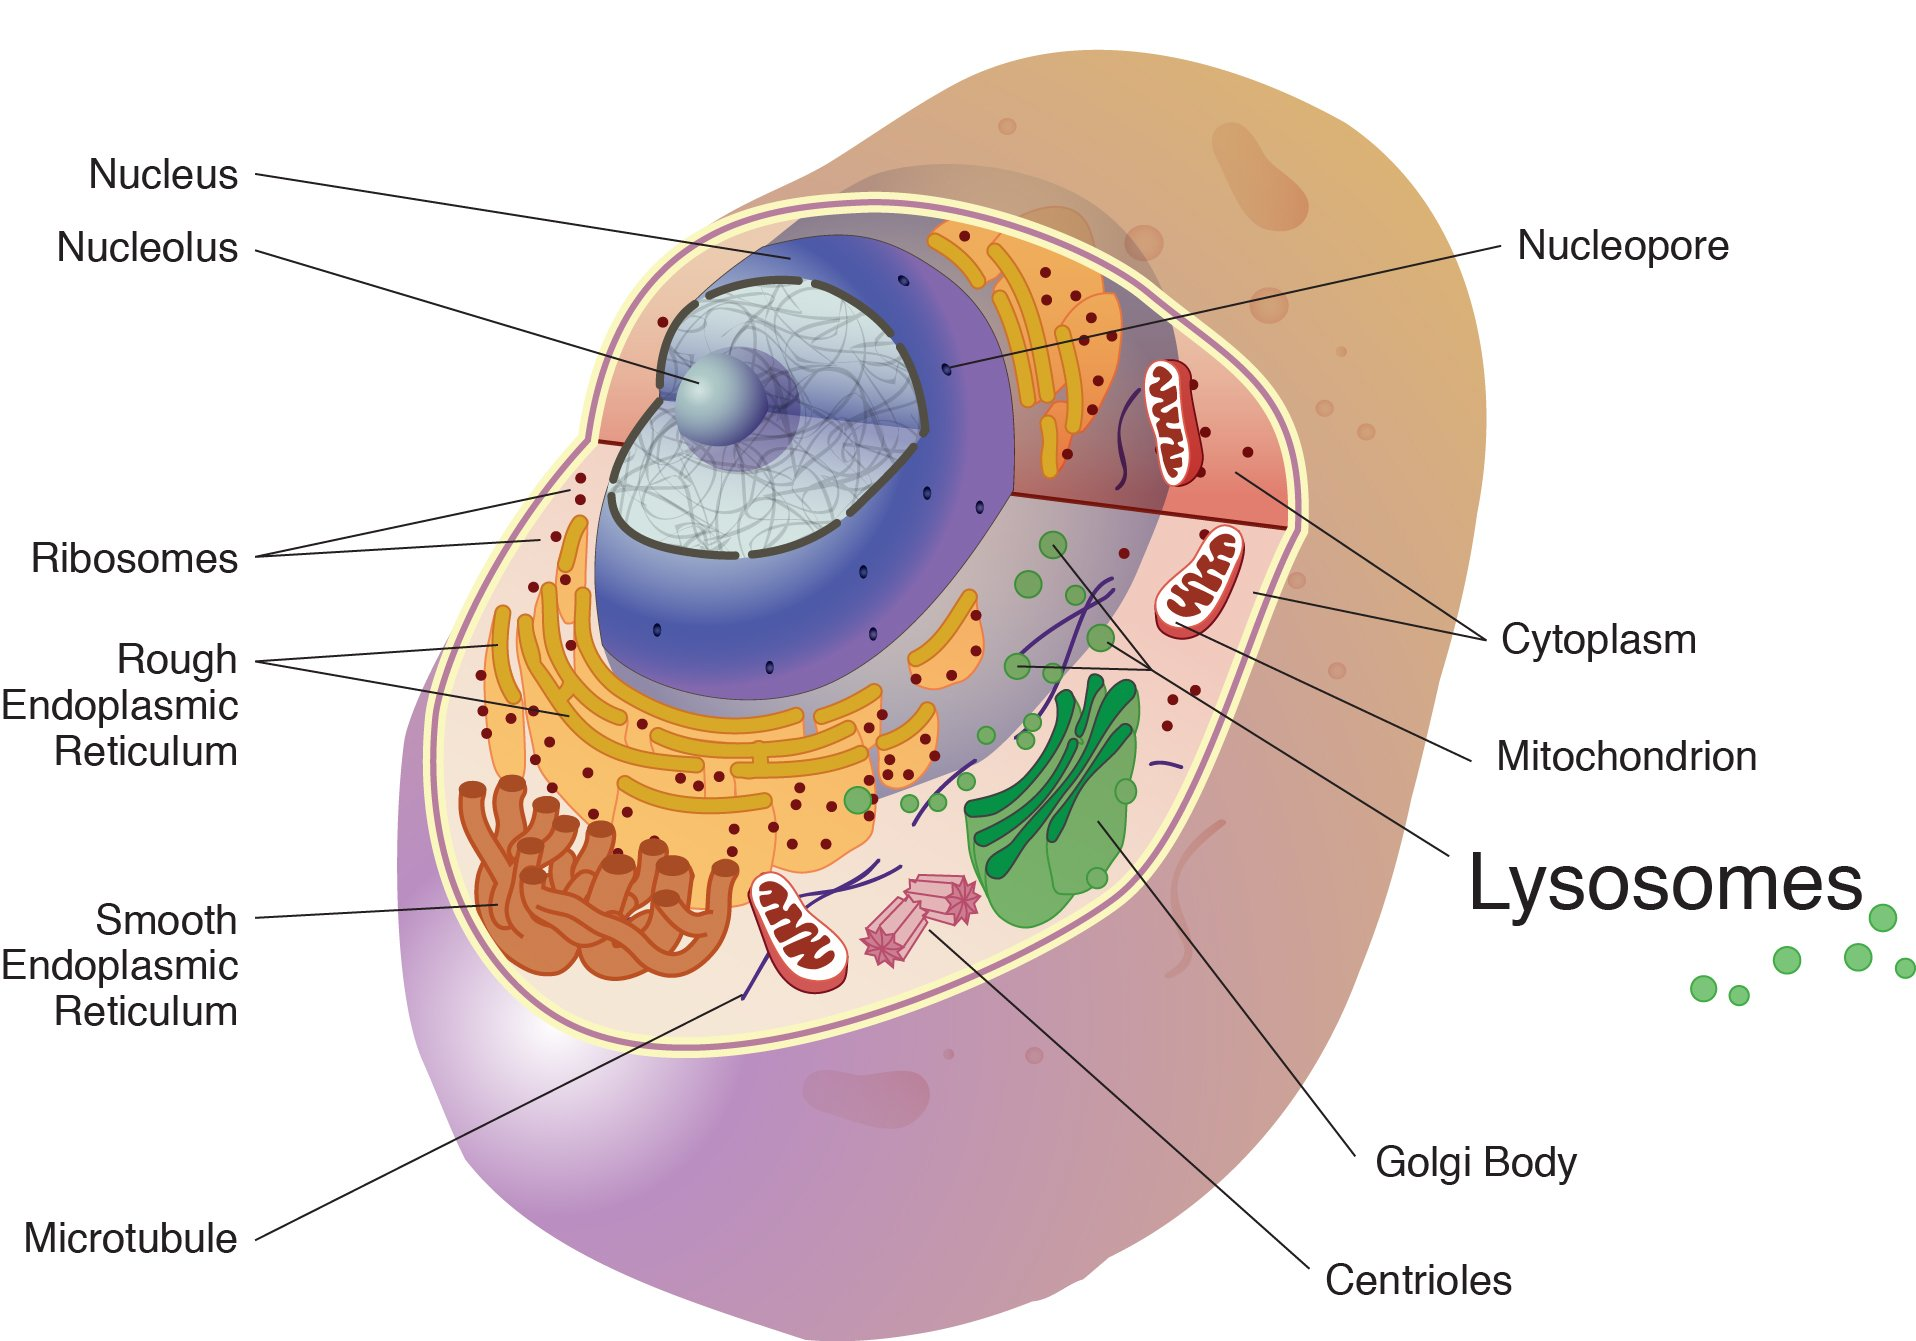 hight resolution of lysosomes are spherical membranous sacs of enzymes these enzymes are acidic hydrolase enzymes that can digest cellular macromolecules